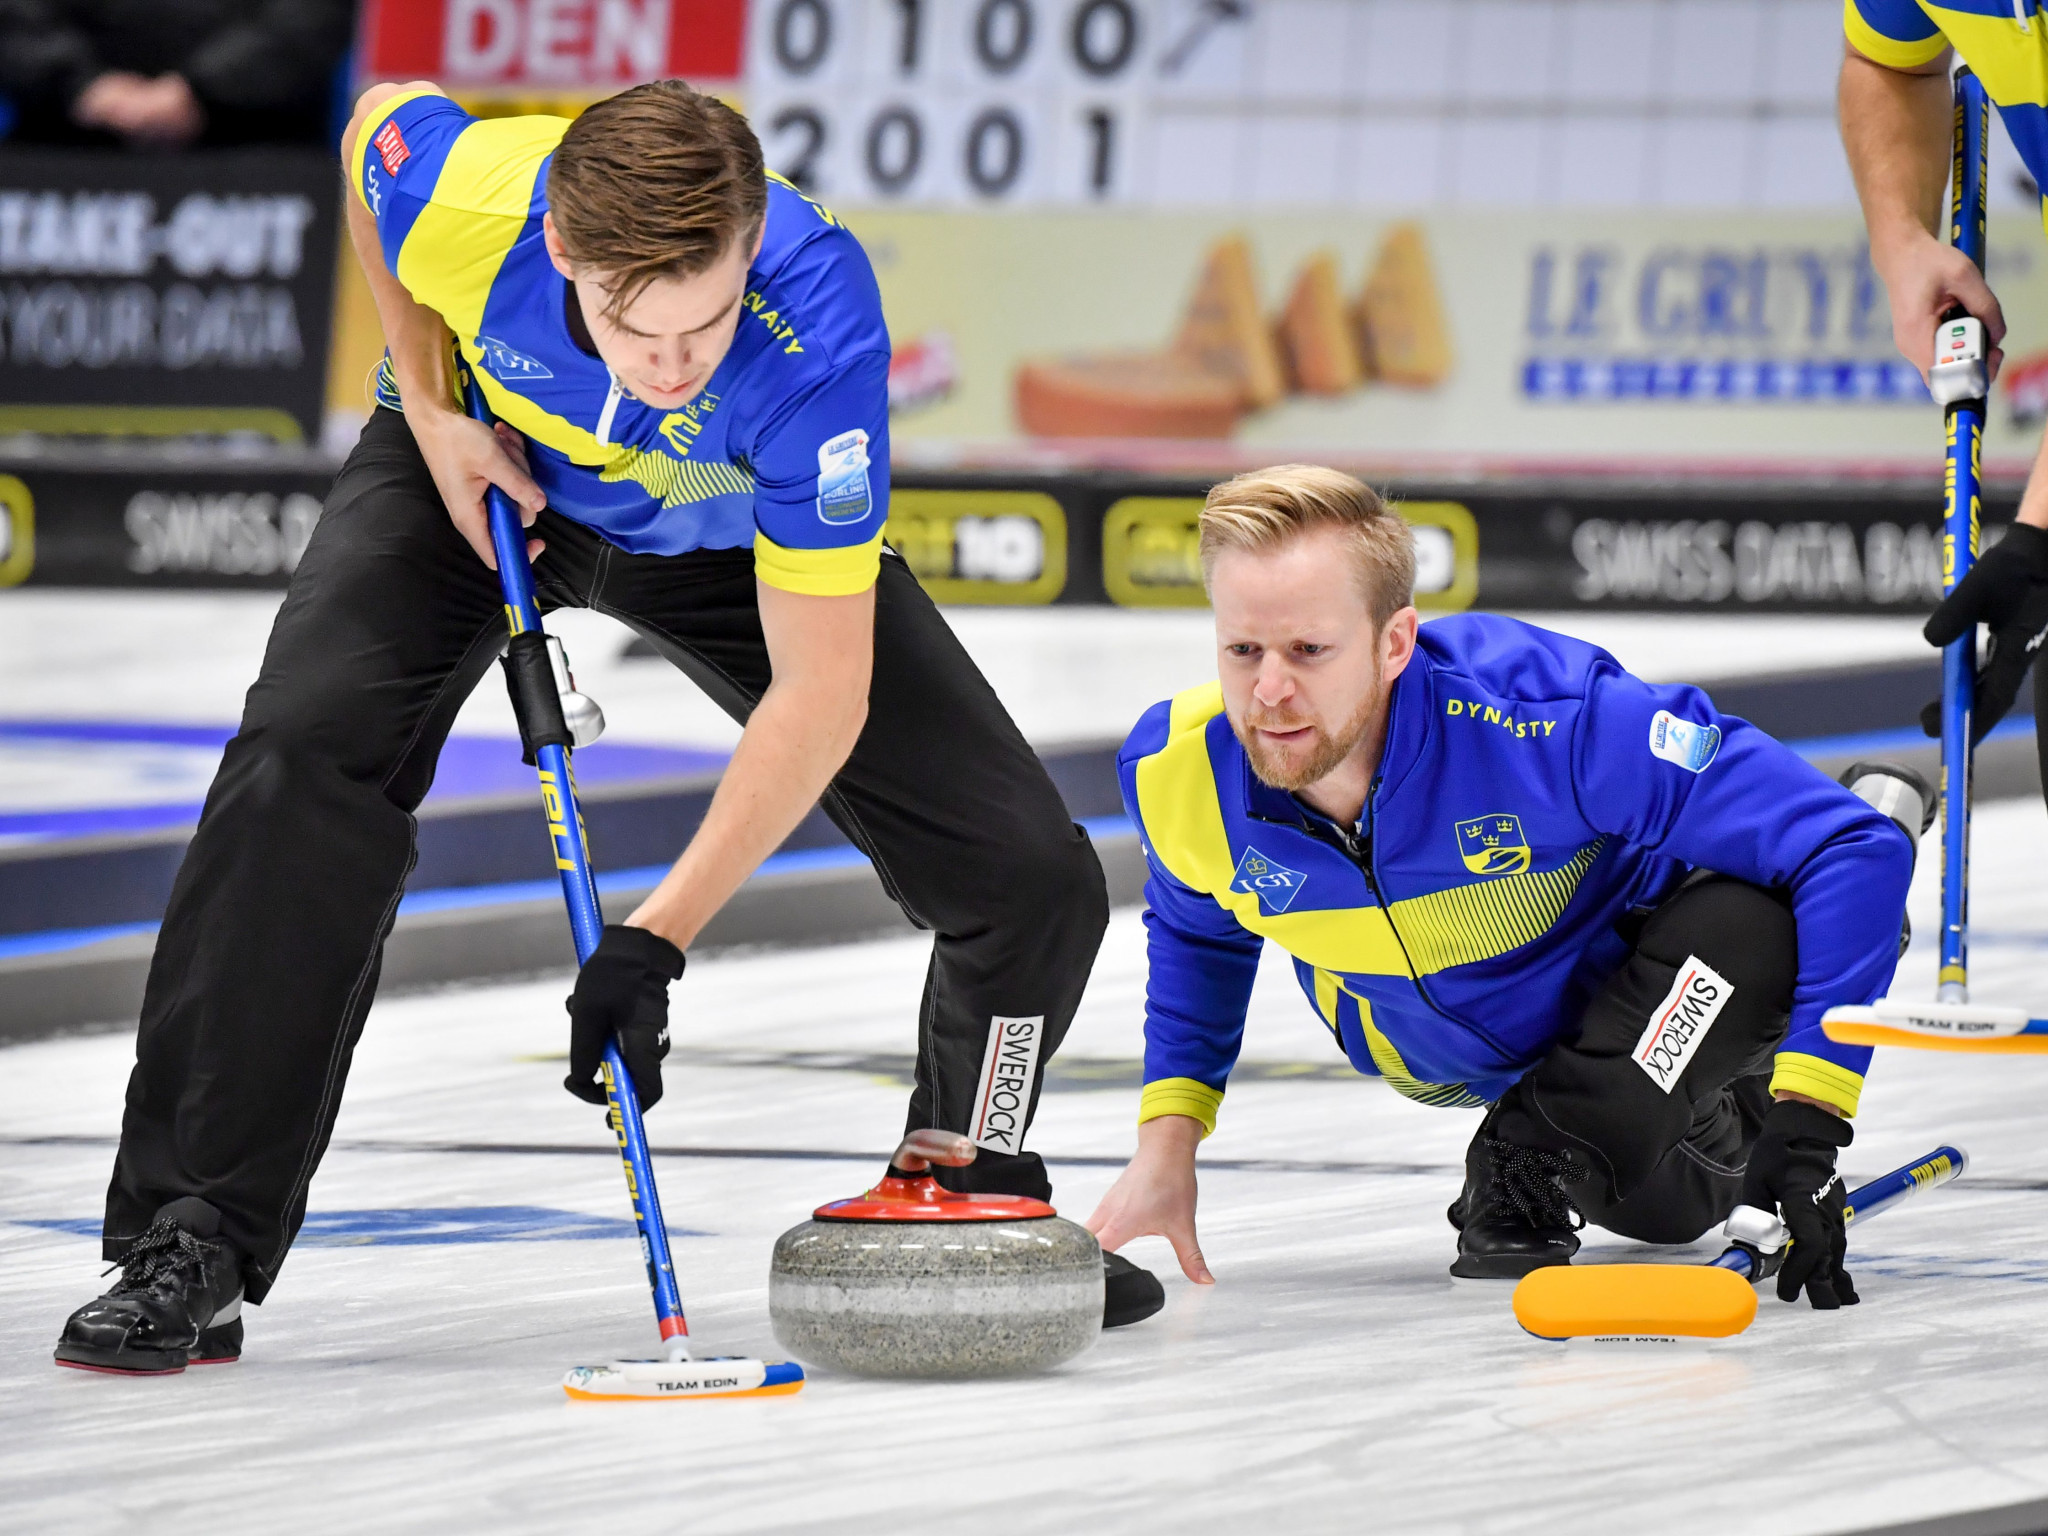 Edin eyes third title in a row at Men's World Curling Championship in Calgary